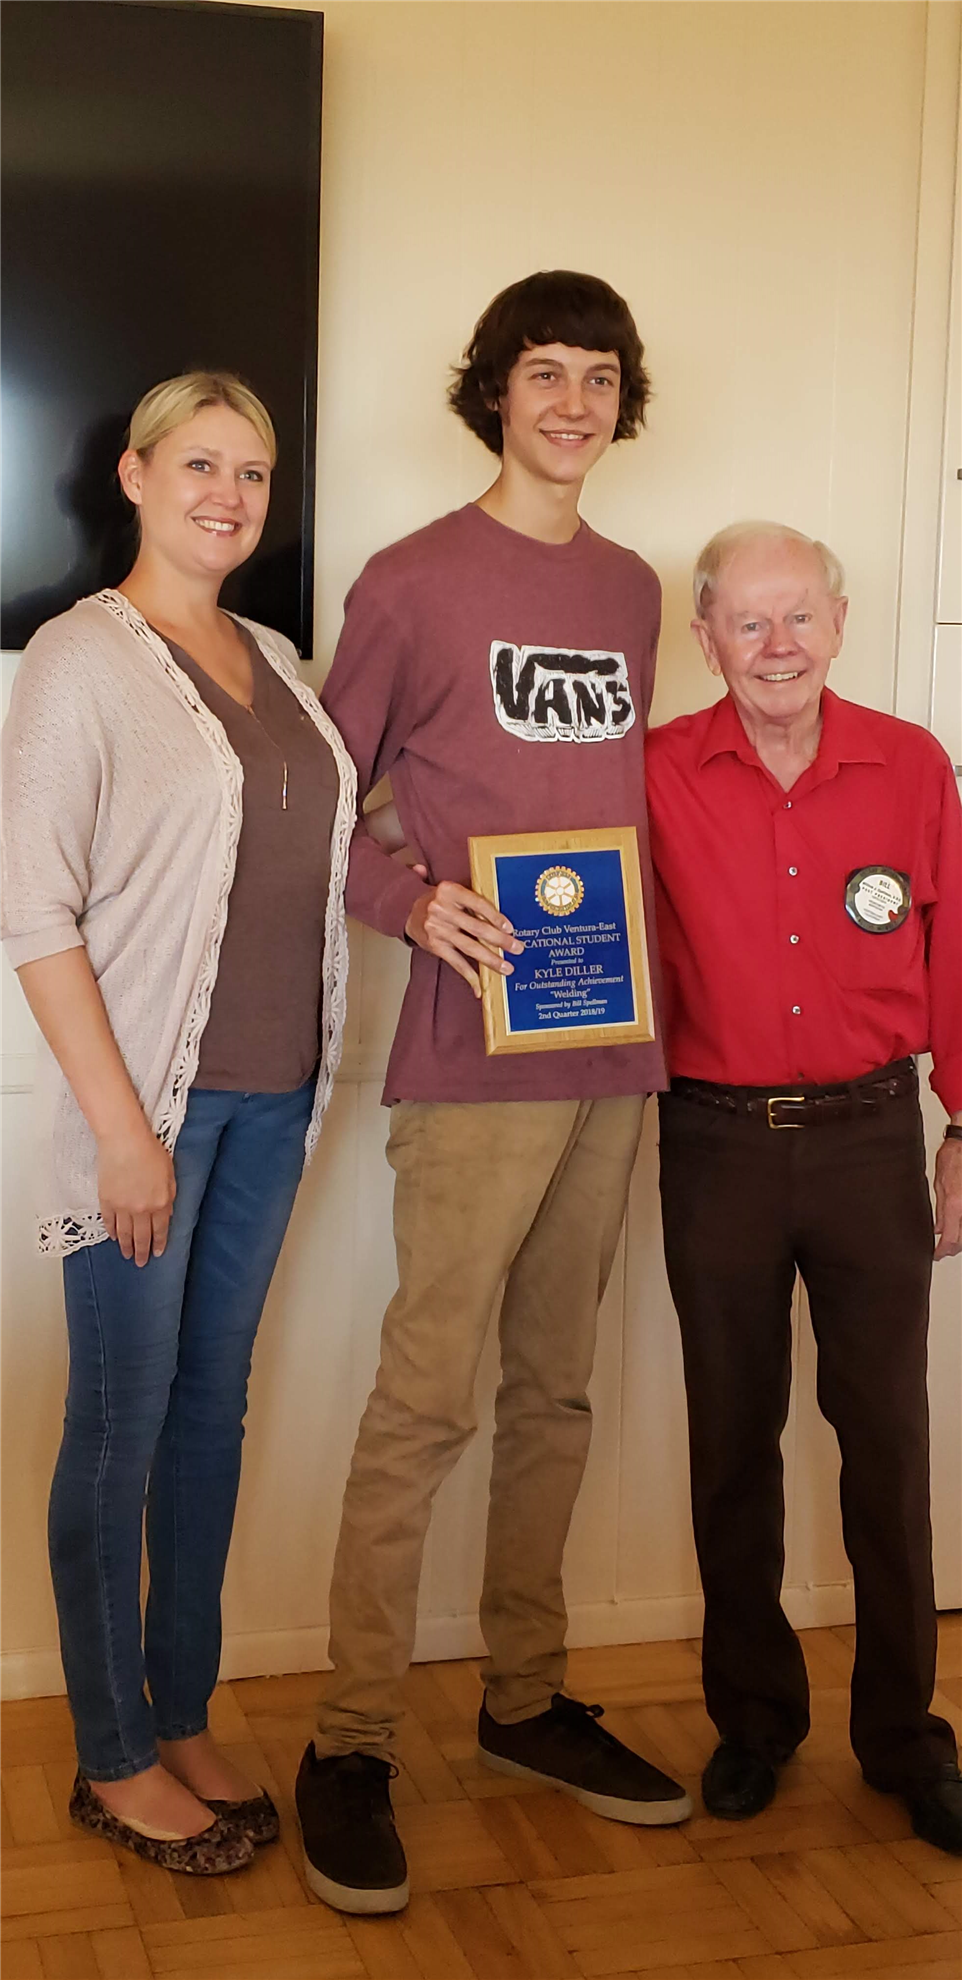 Stories Rotary Club Of Ventura East Nightmare was born as tyler ventura on may 2, 1992 in new york, the usa. stories rotary club of ventura east